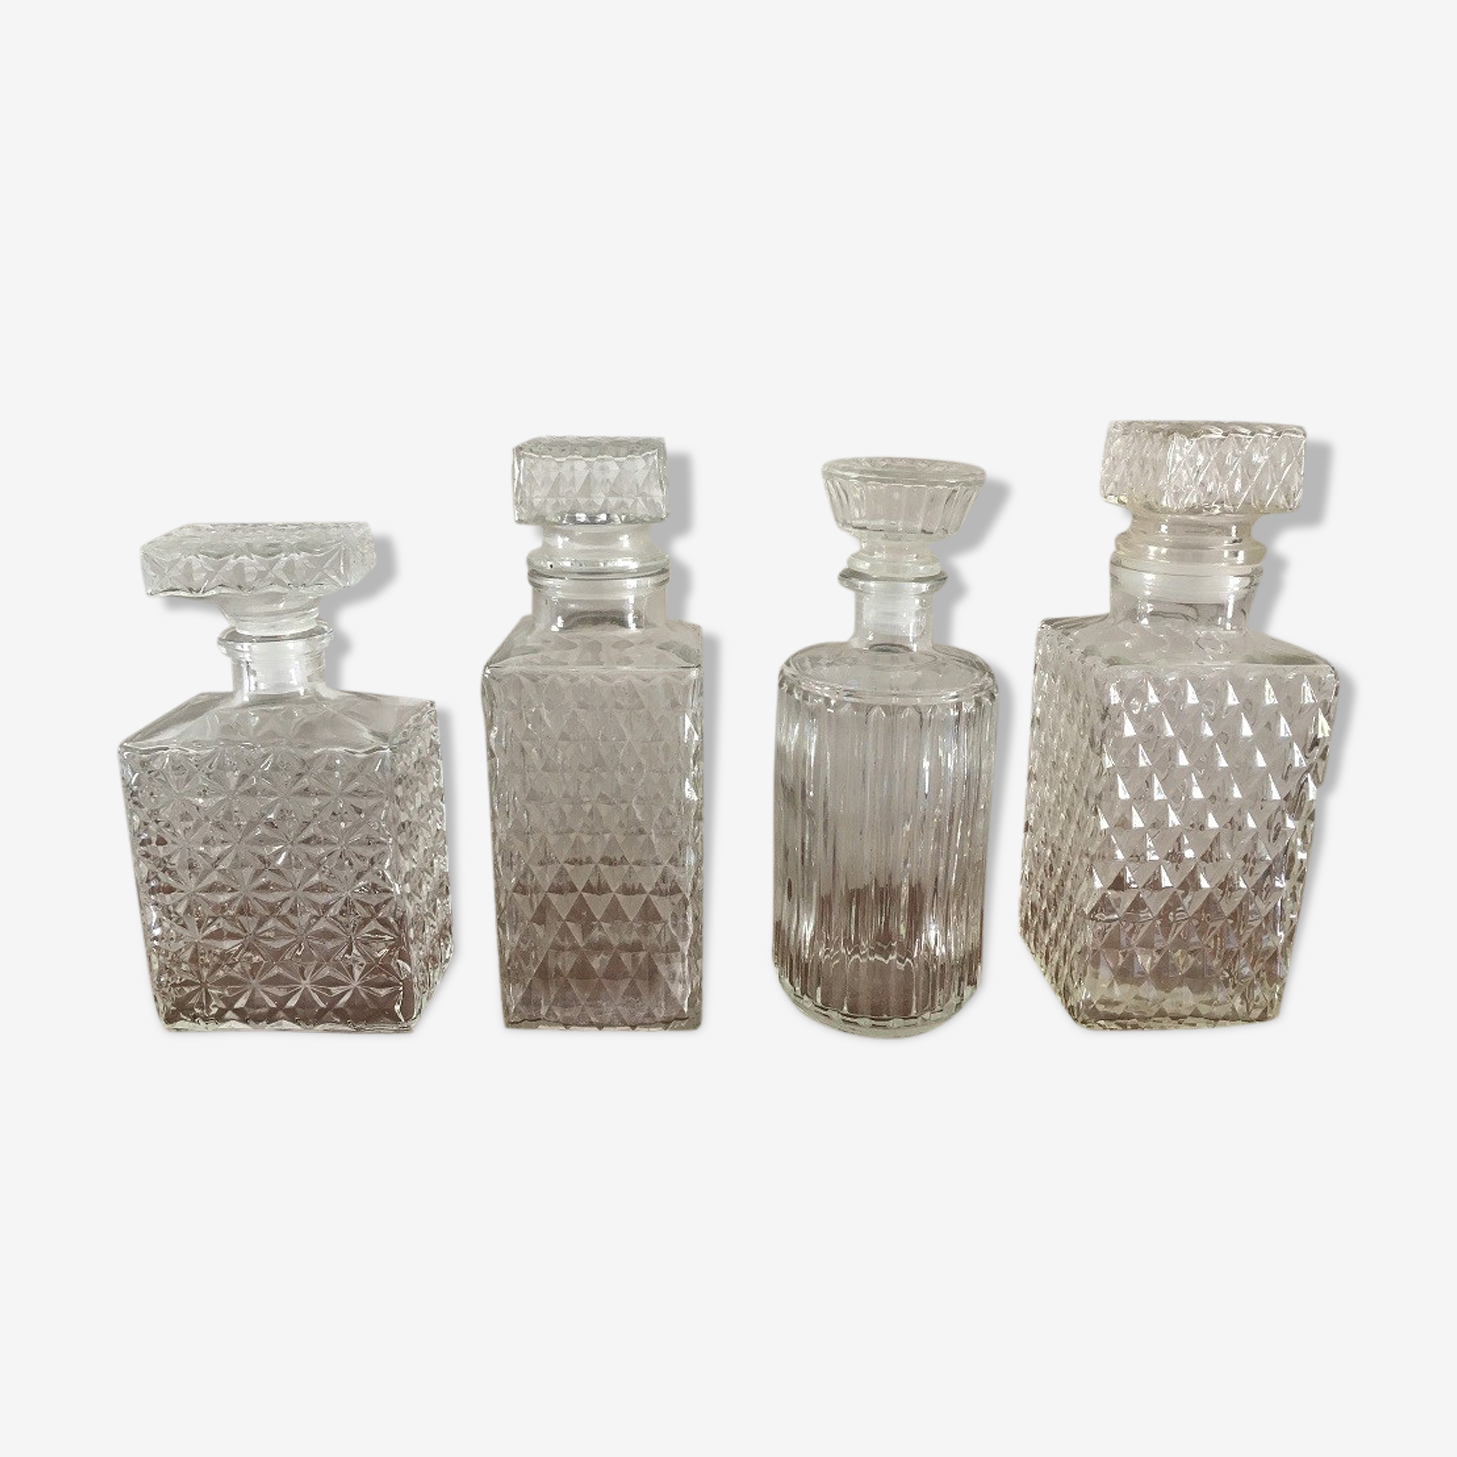 Suite 4 carafes for whiskey